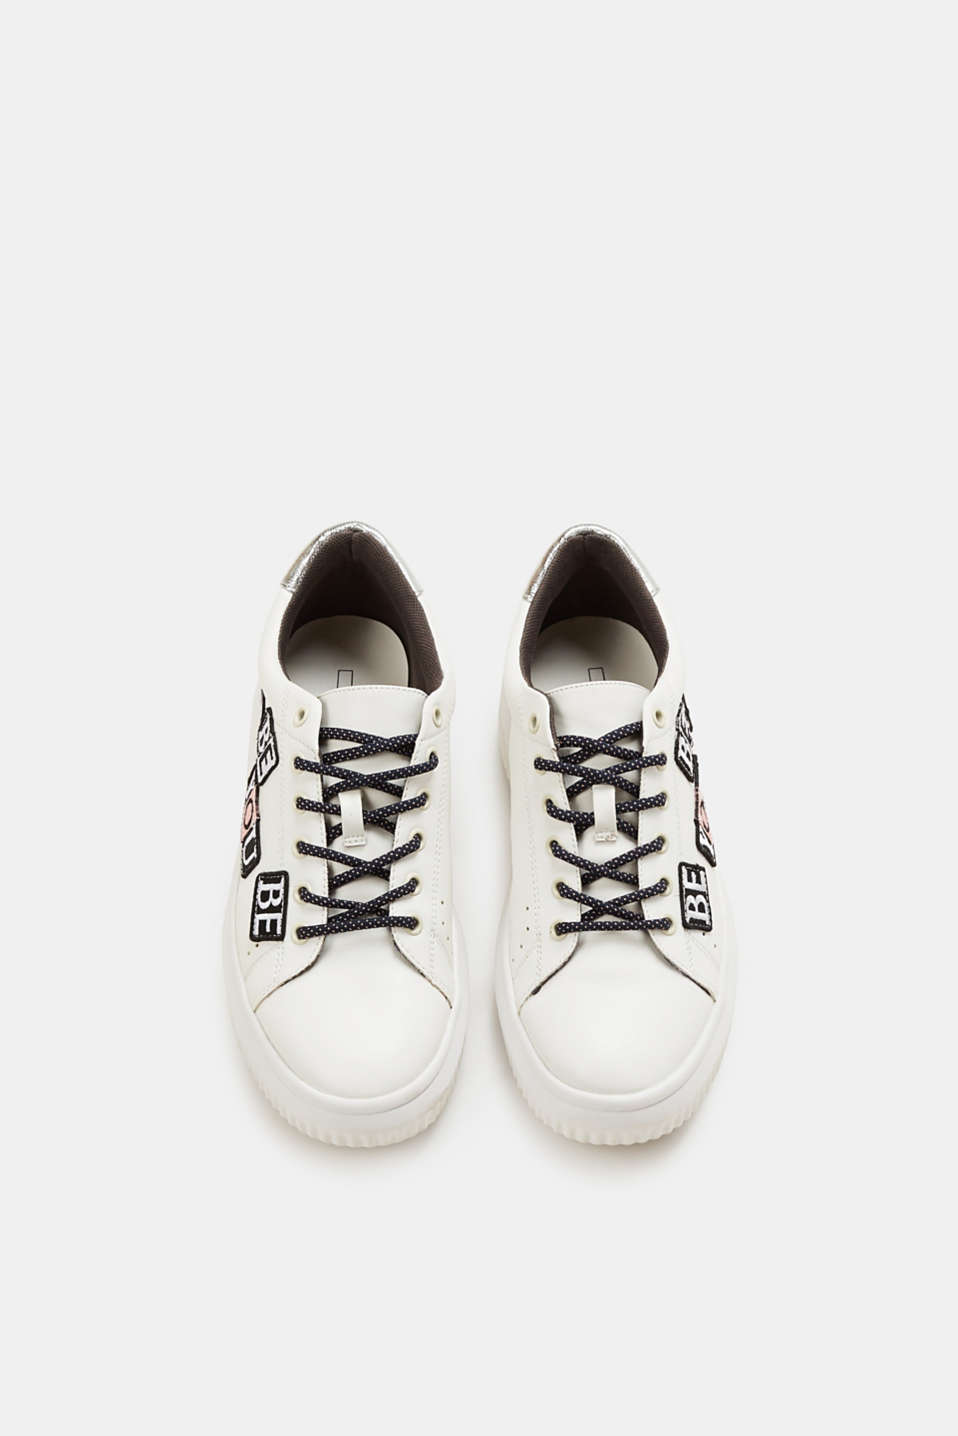 Statement platform trainers in faux leather